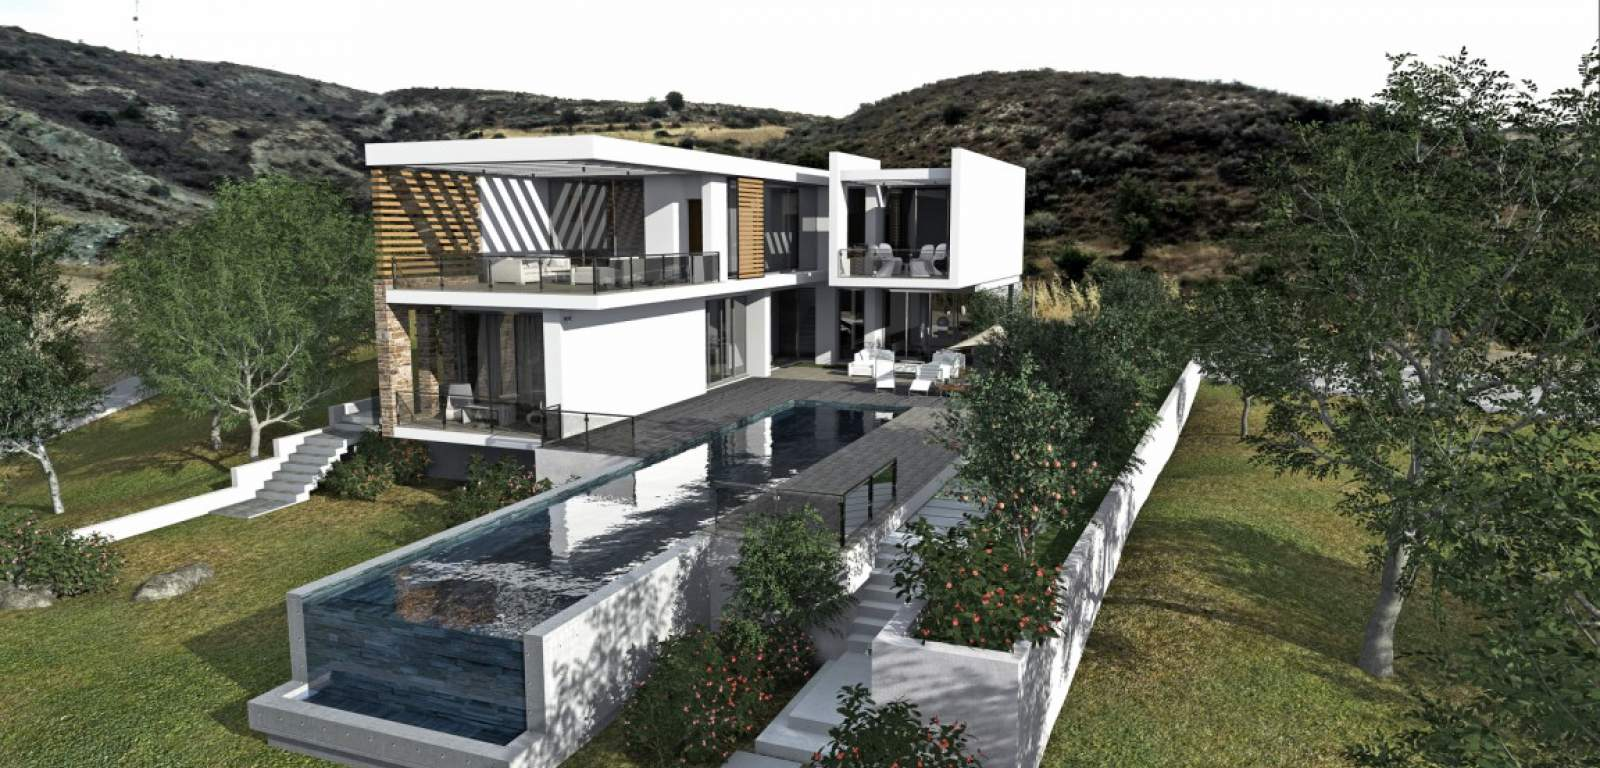 Willa 323 m² w Pafos